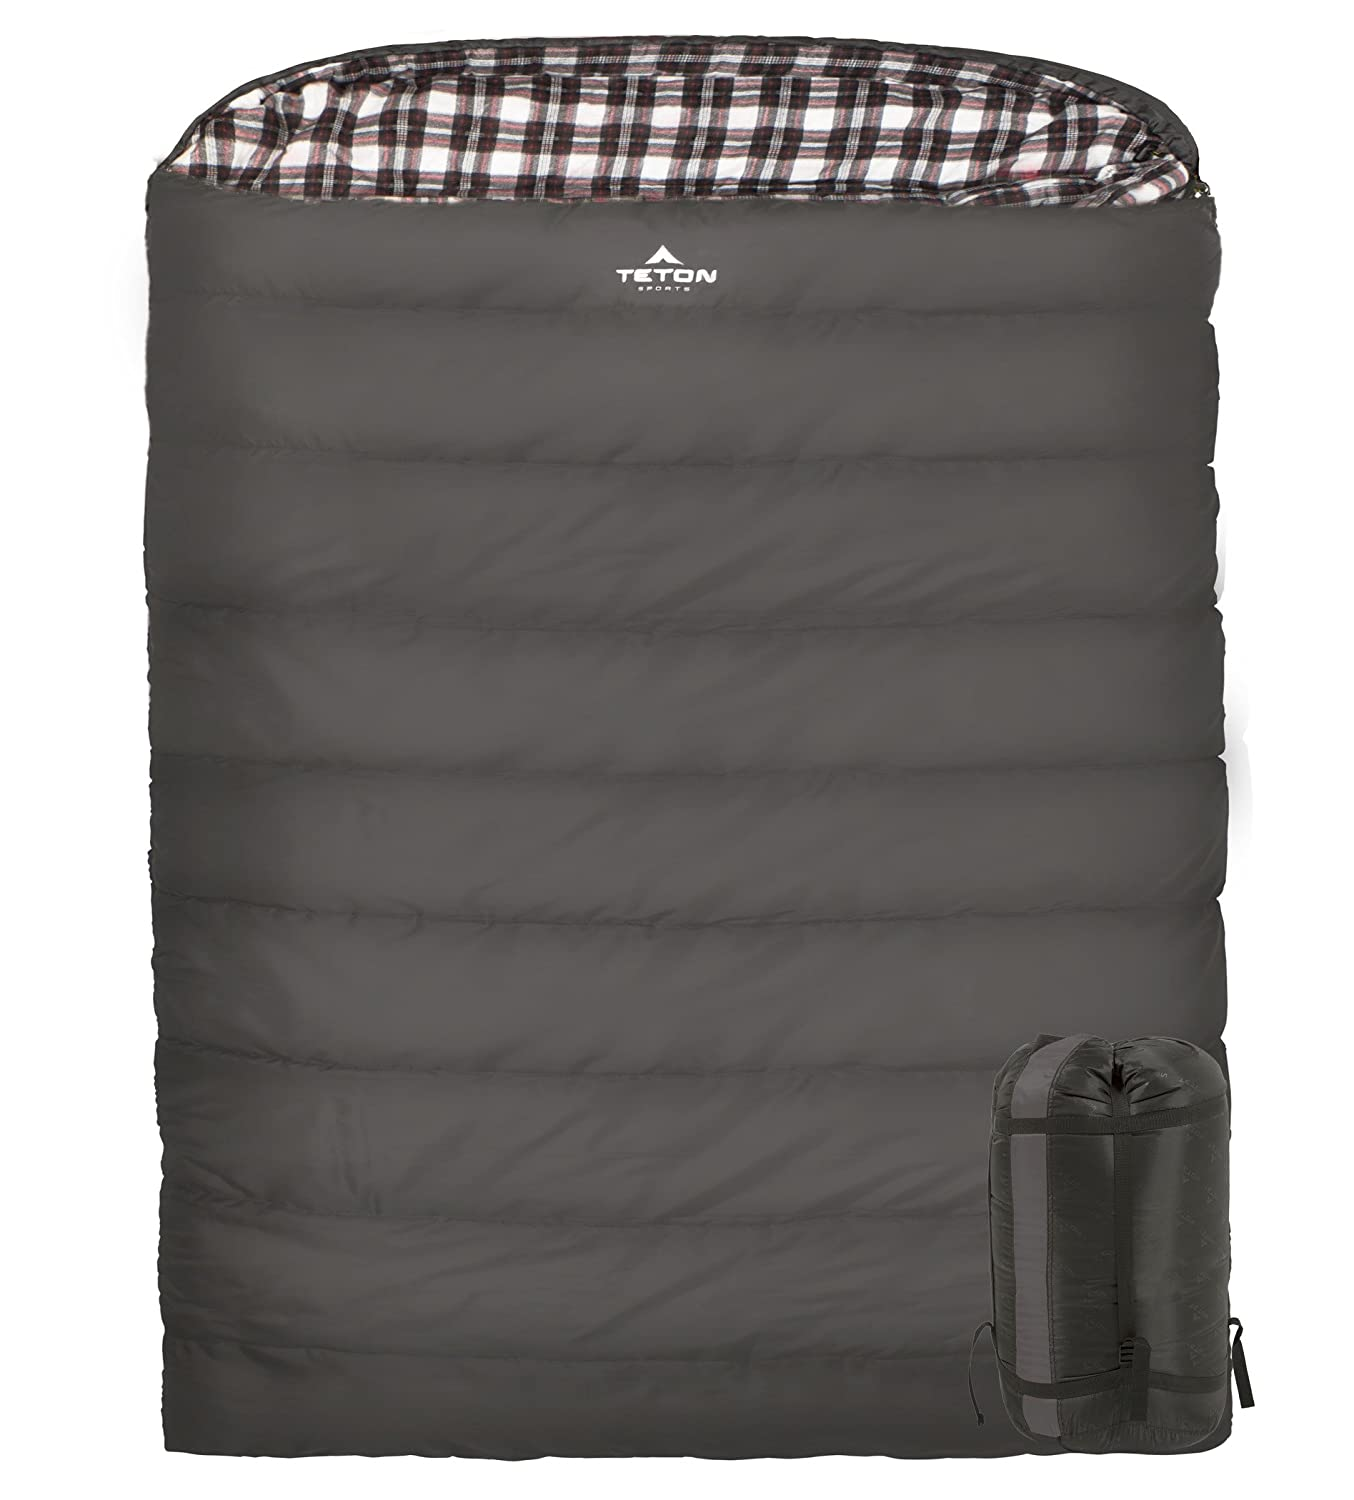 TETON Sports Fahrenheit Mammoth Double Sleeping Bag Warm and Comfortable Double Sleeping Bag Great for Family Camping Compression Sack Included